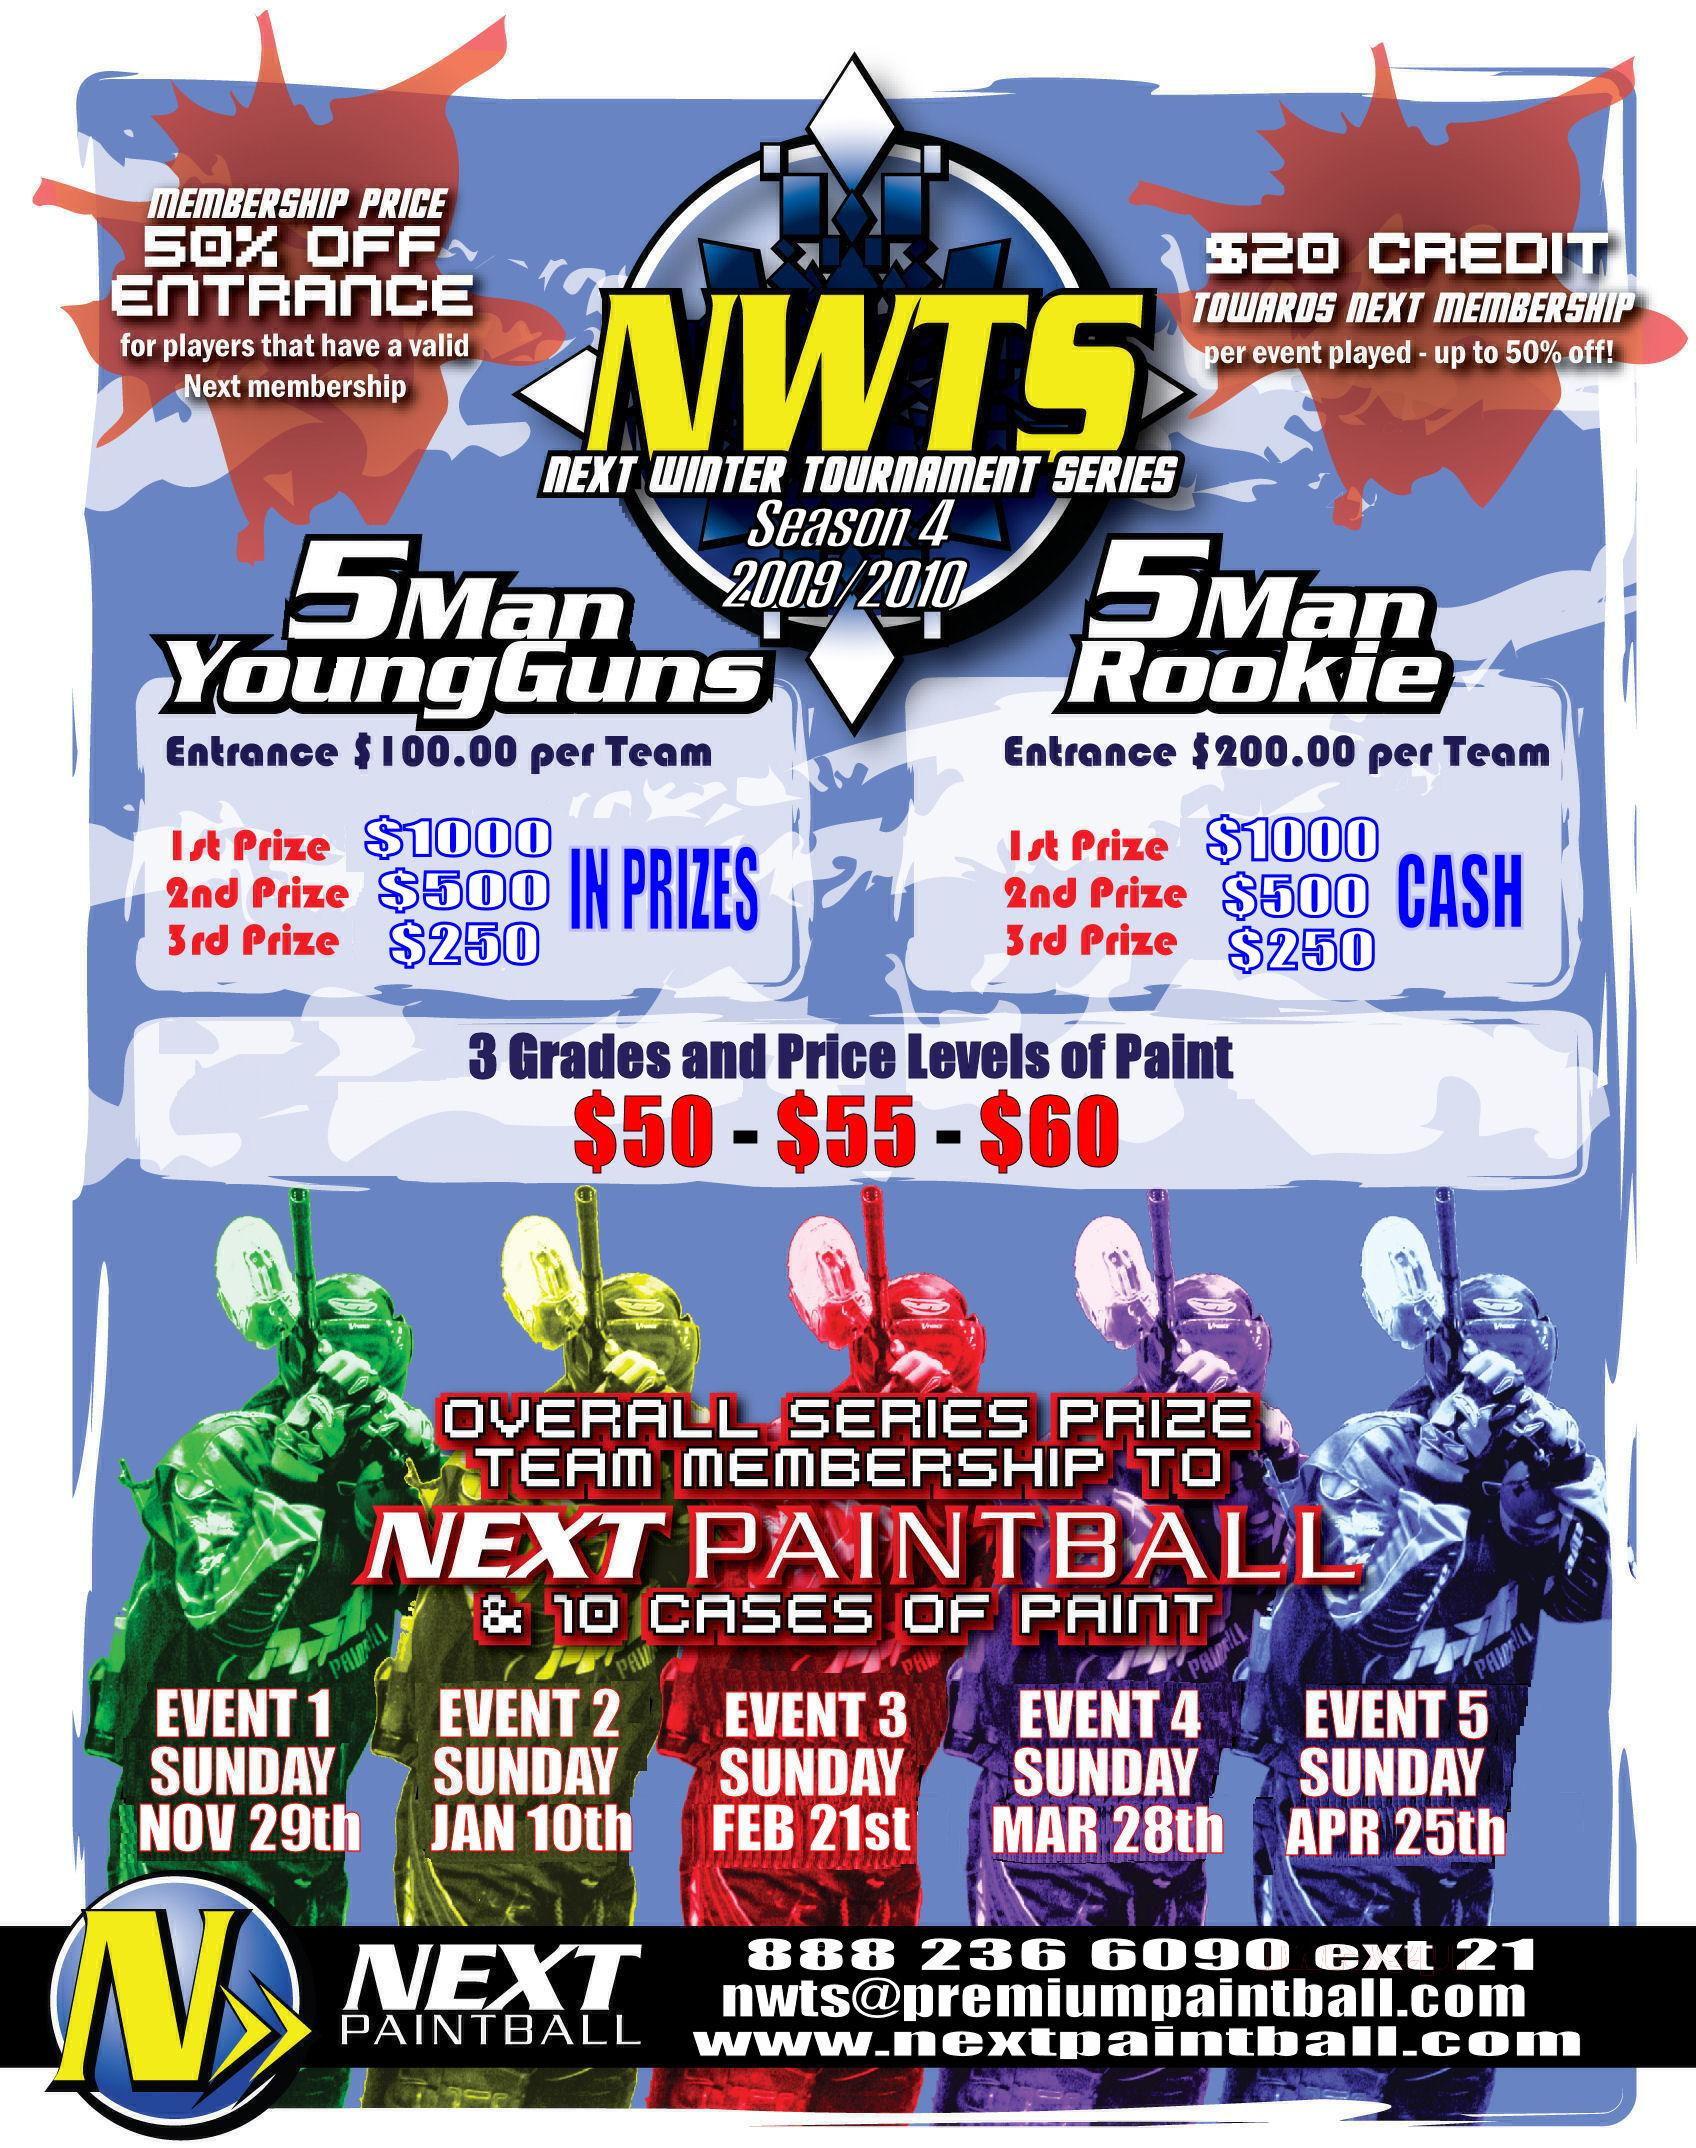 NWTS Next Winter Tournament Series